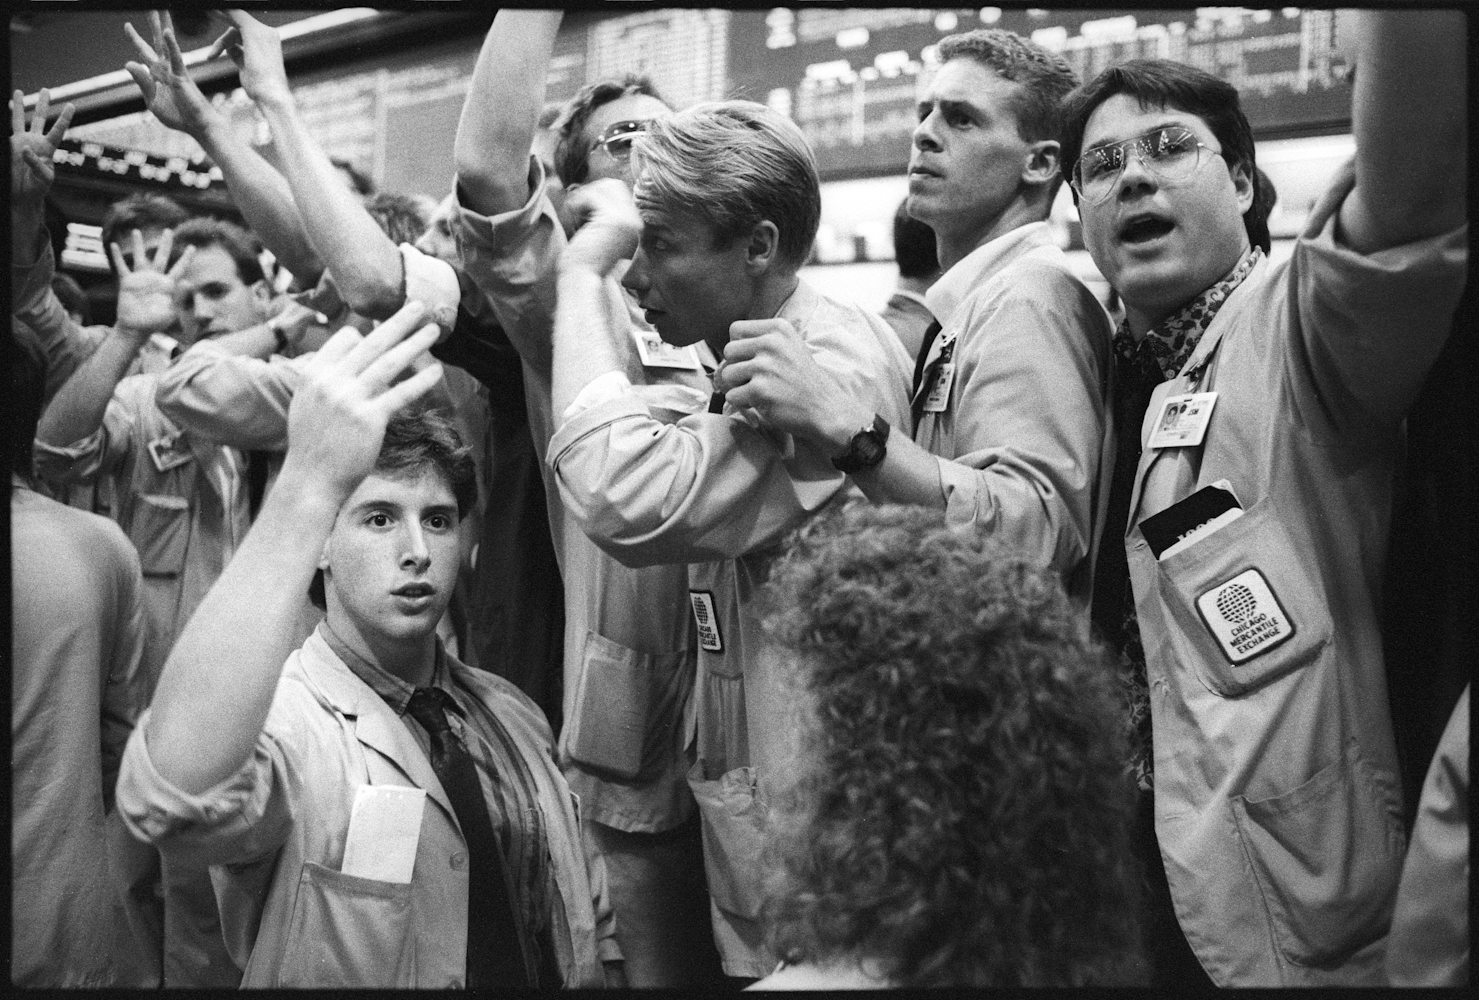 Traders on the floor of the Chicago Mercantile Stock Exchange using hand signals and yelling to trade commodities.